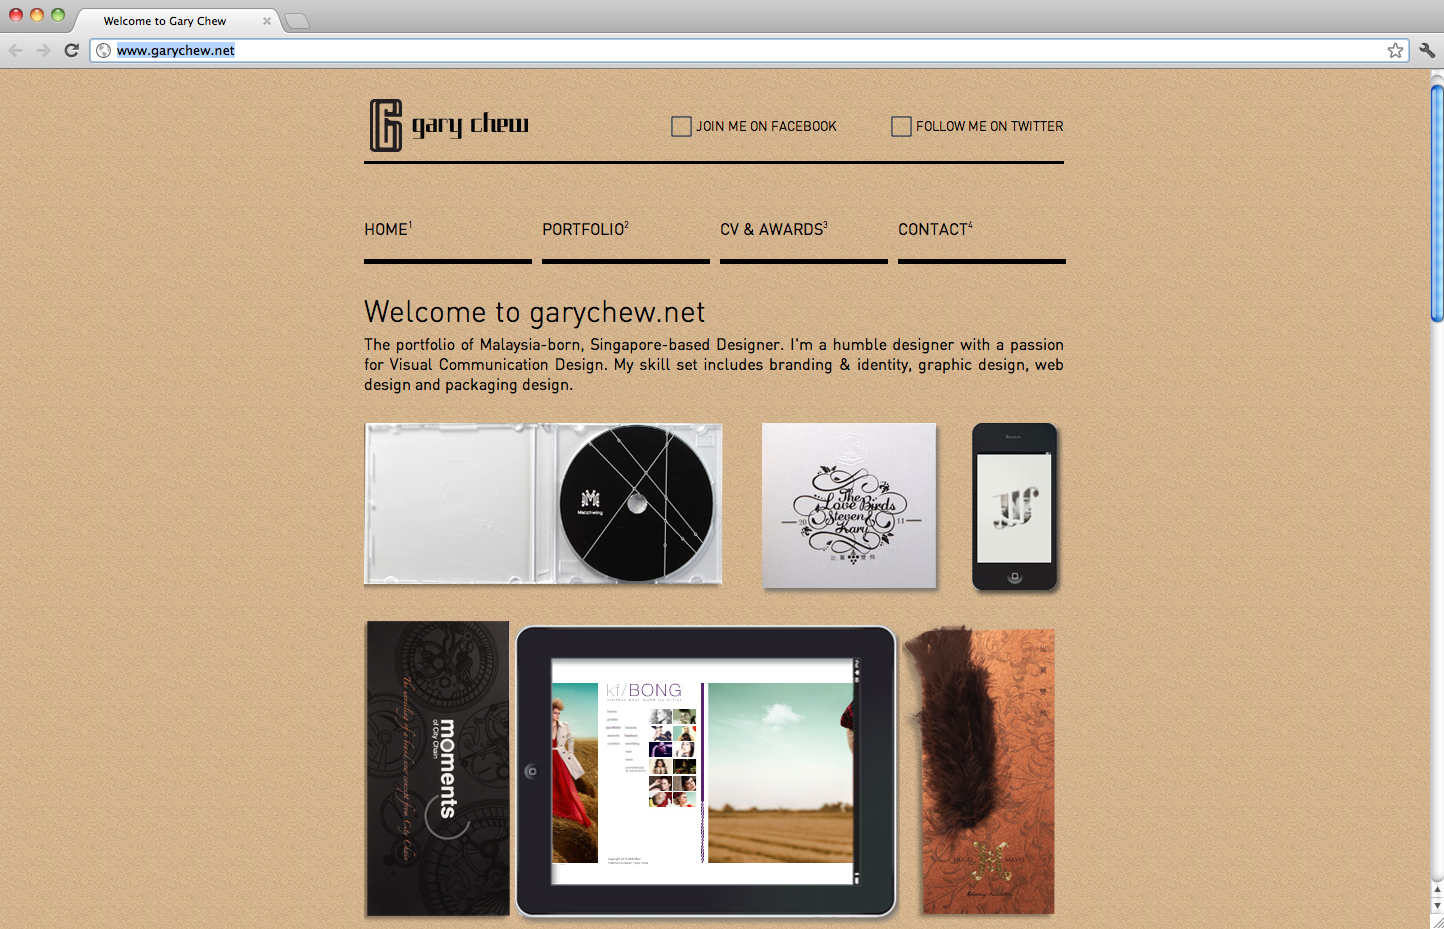 Gary Chew Website Screenshot